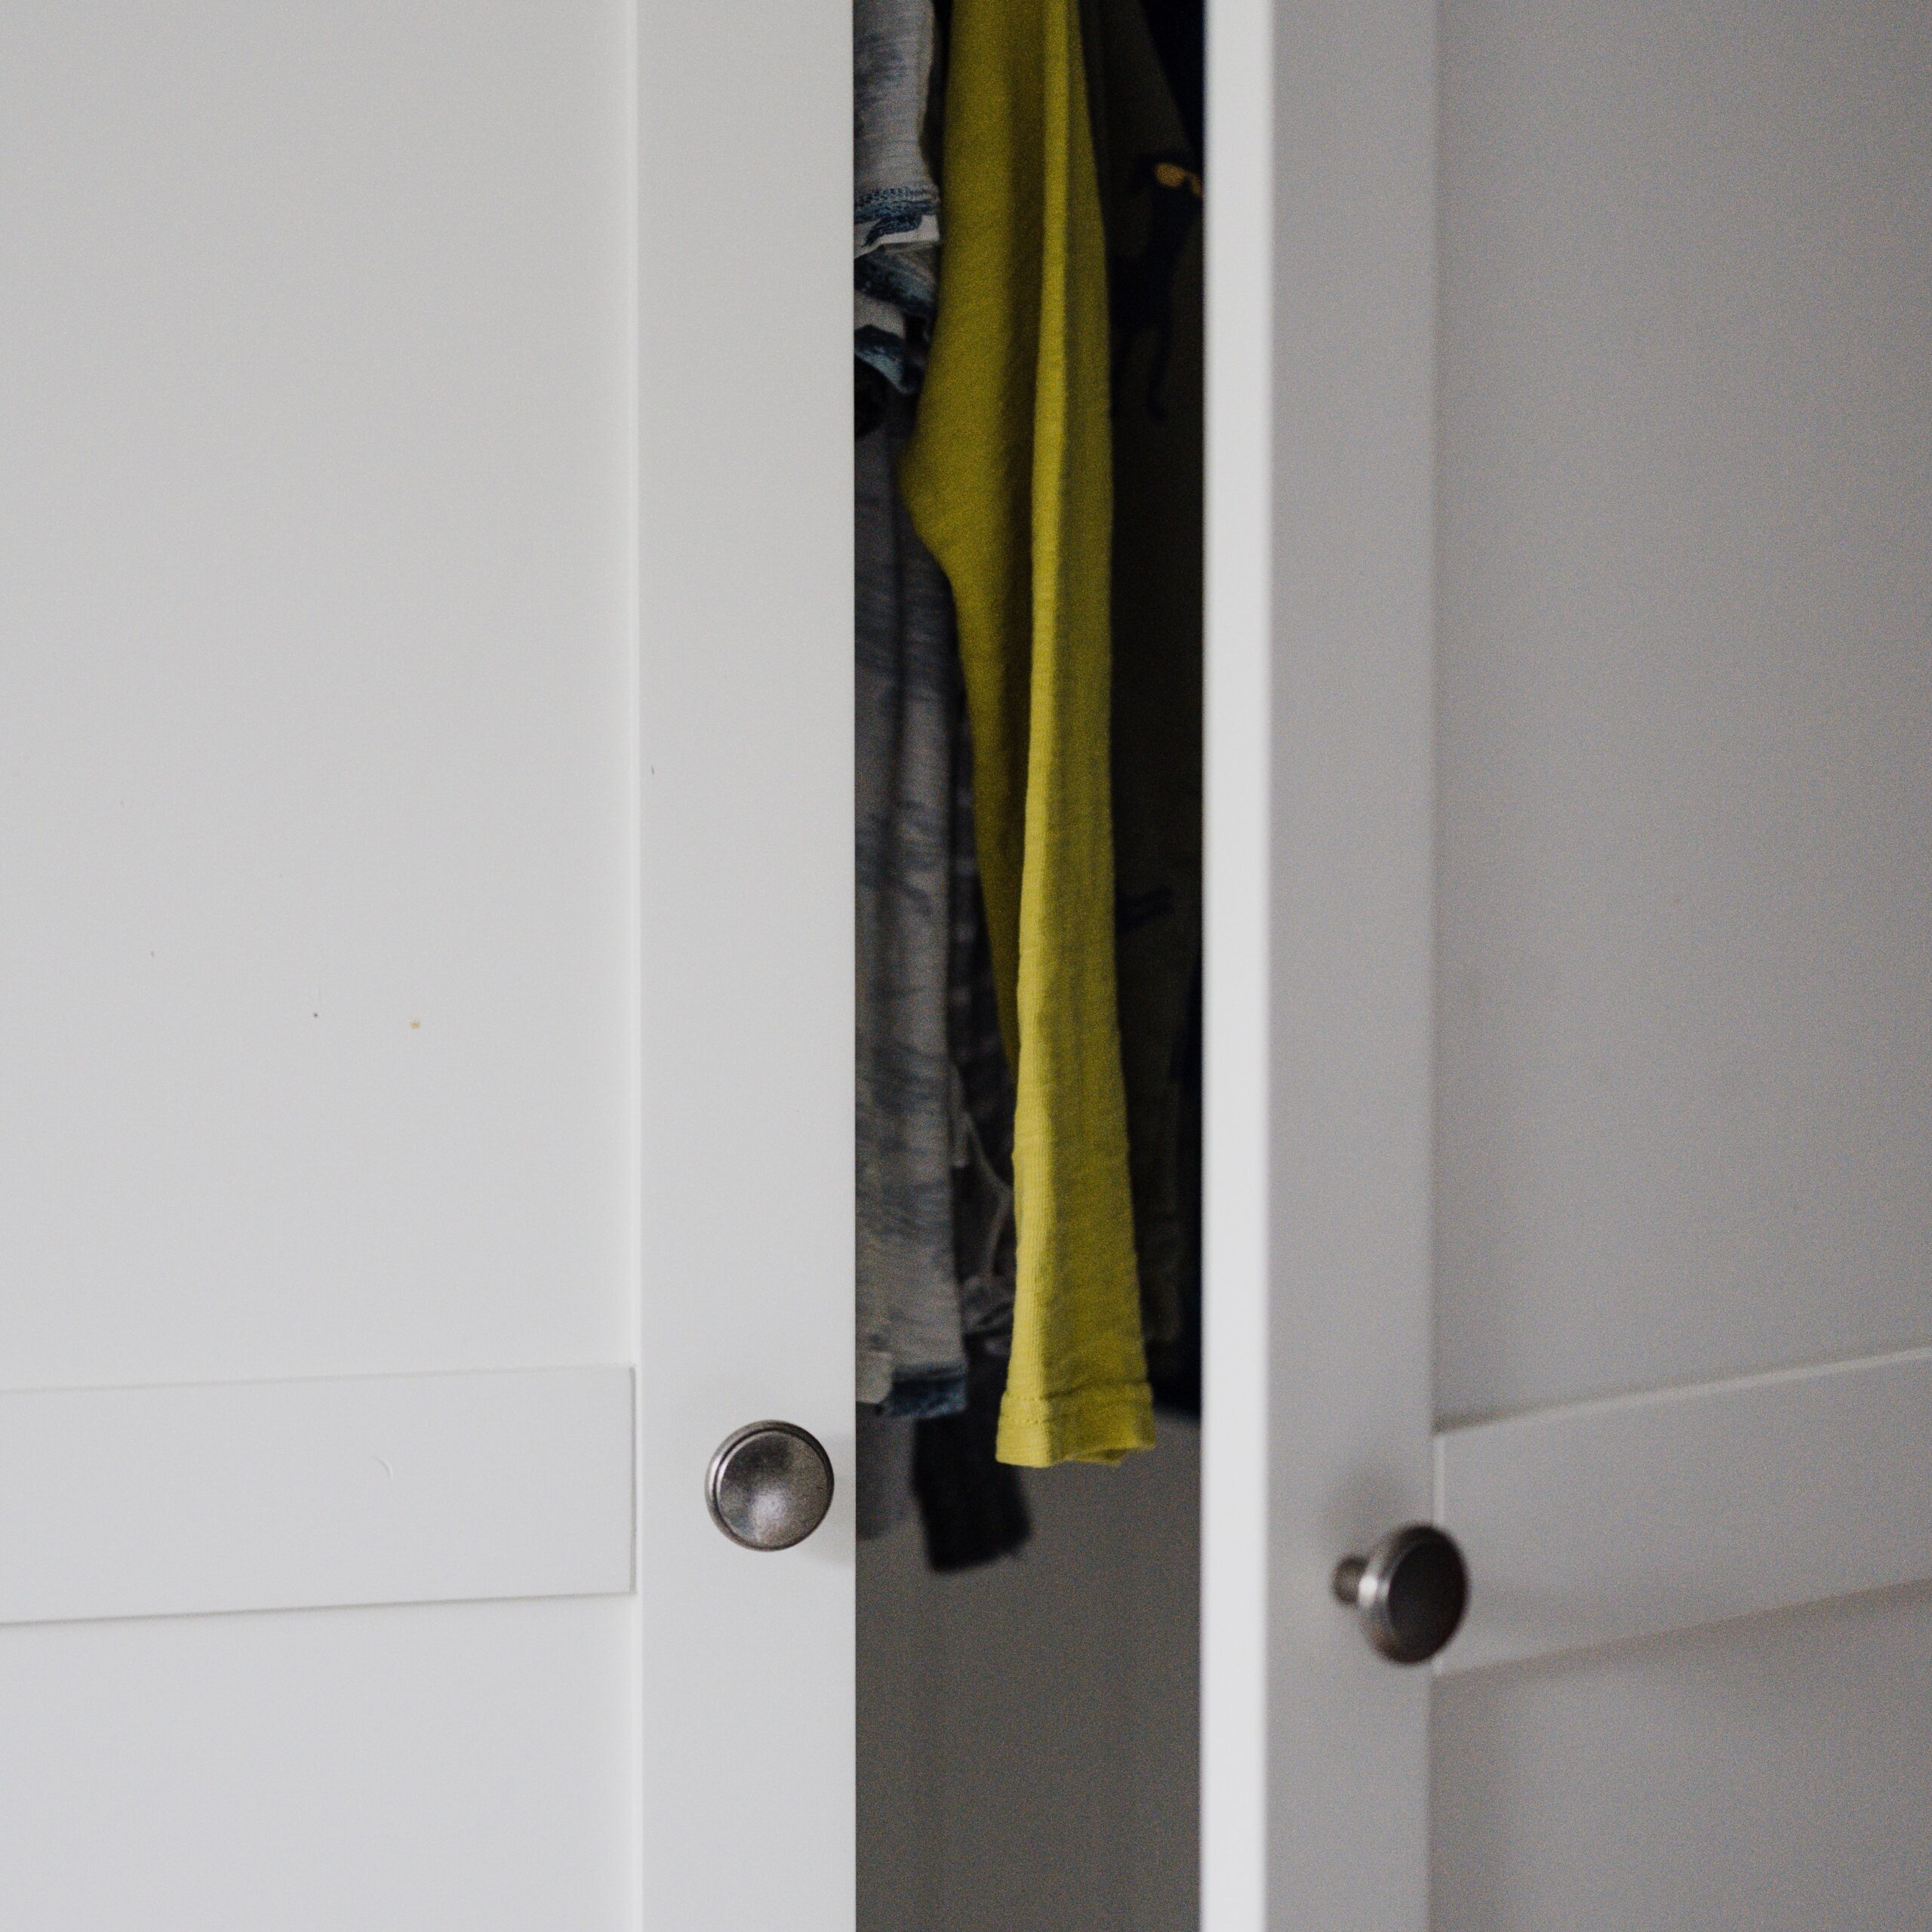 Closet door partially opened with clothes inside